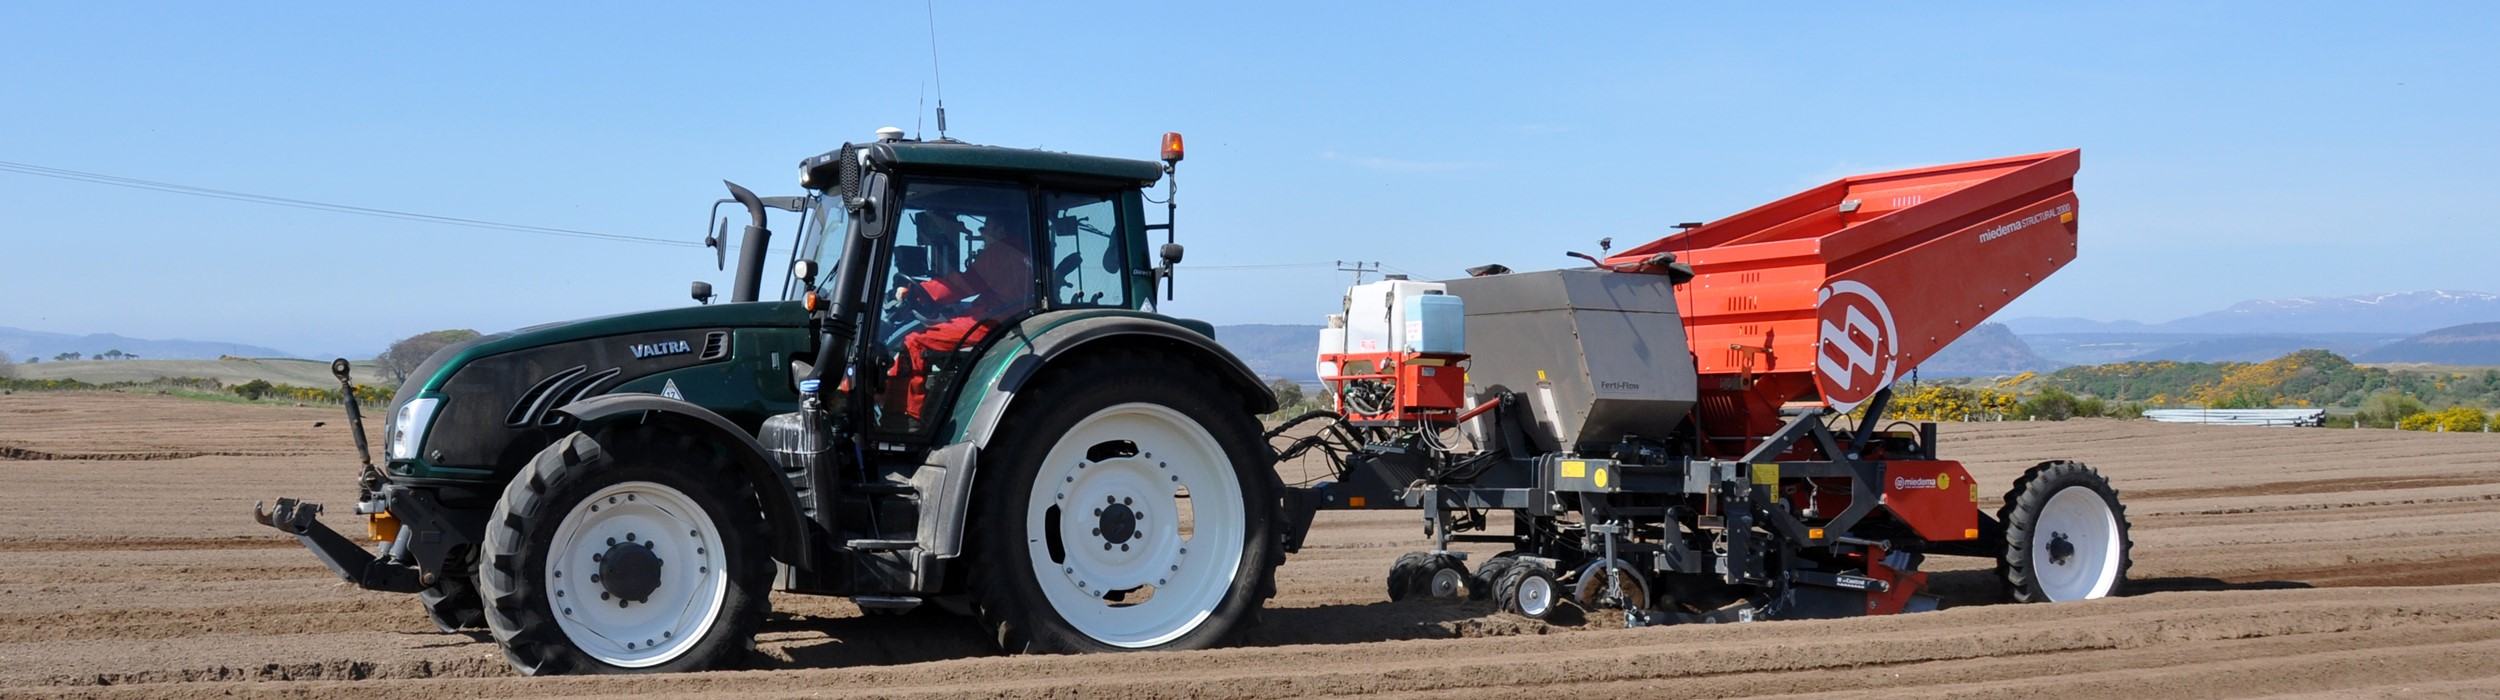 Mounted or trailed 2-row belt planter